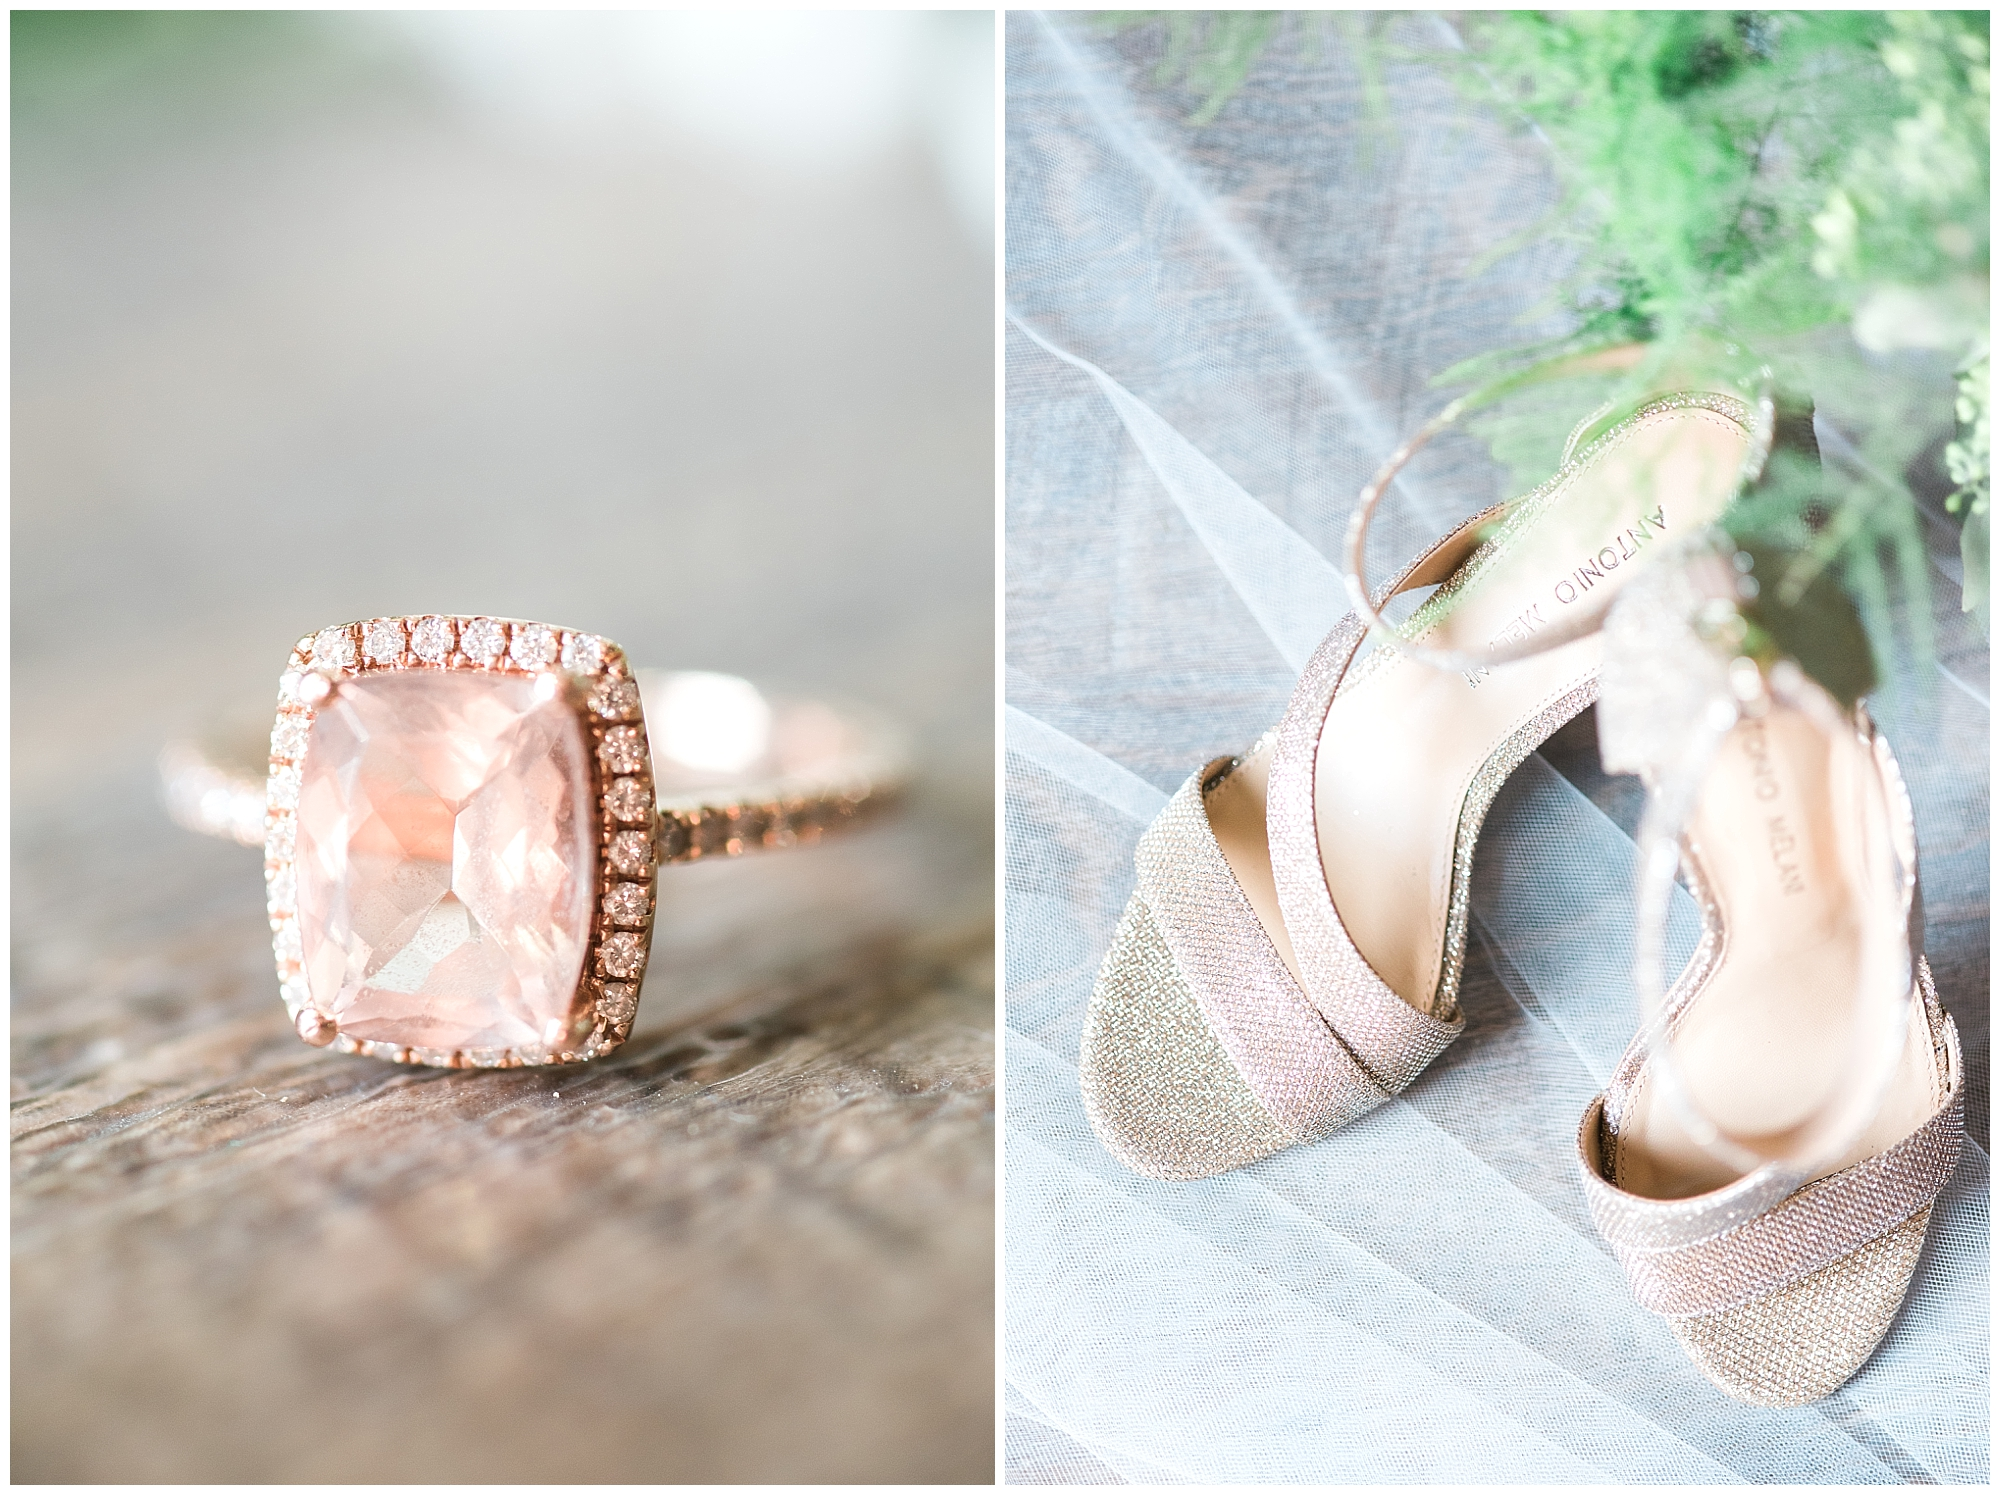 Such a perfect ring!